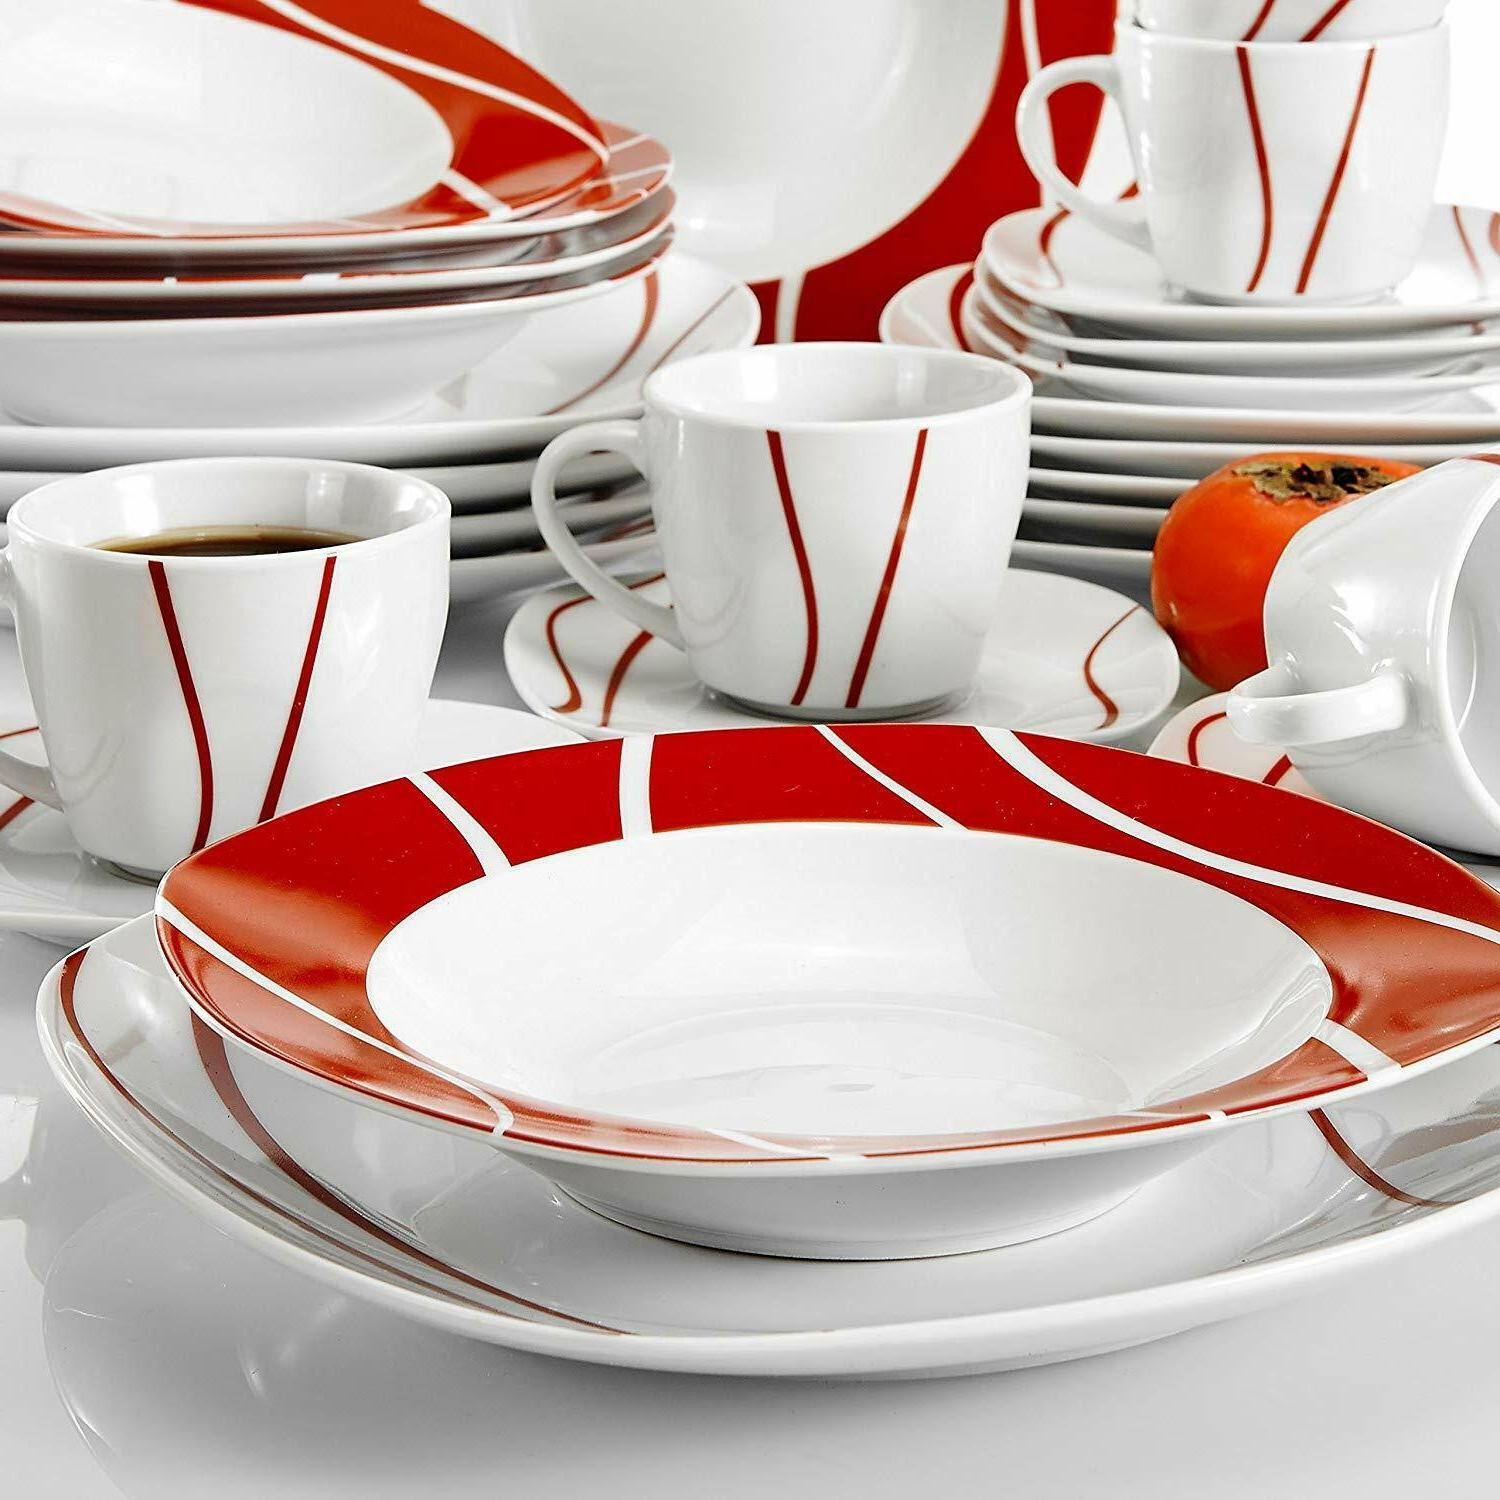 Porcelain 6 Person, Ceramic with Dinner Plates